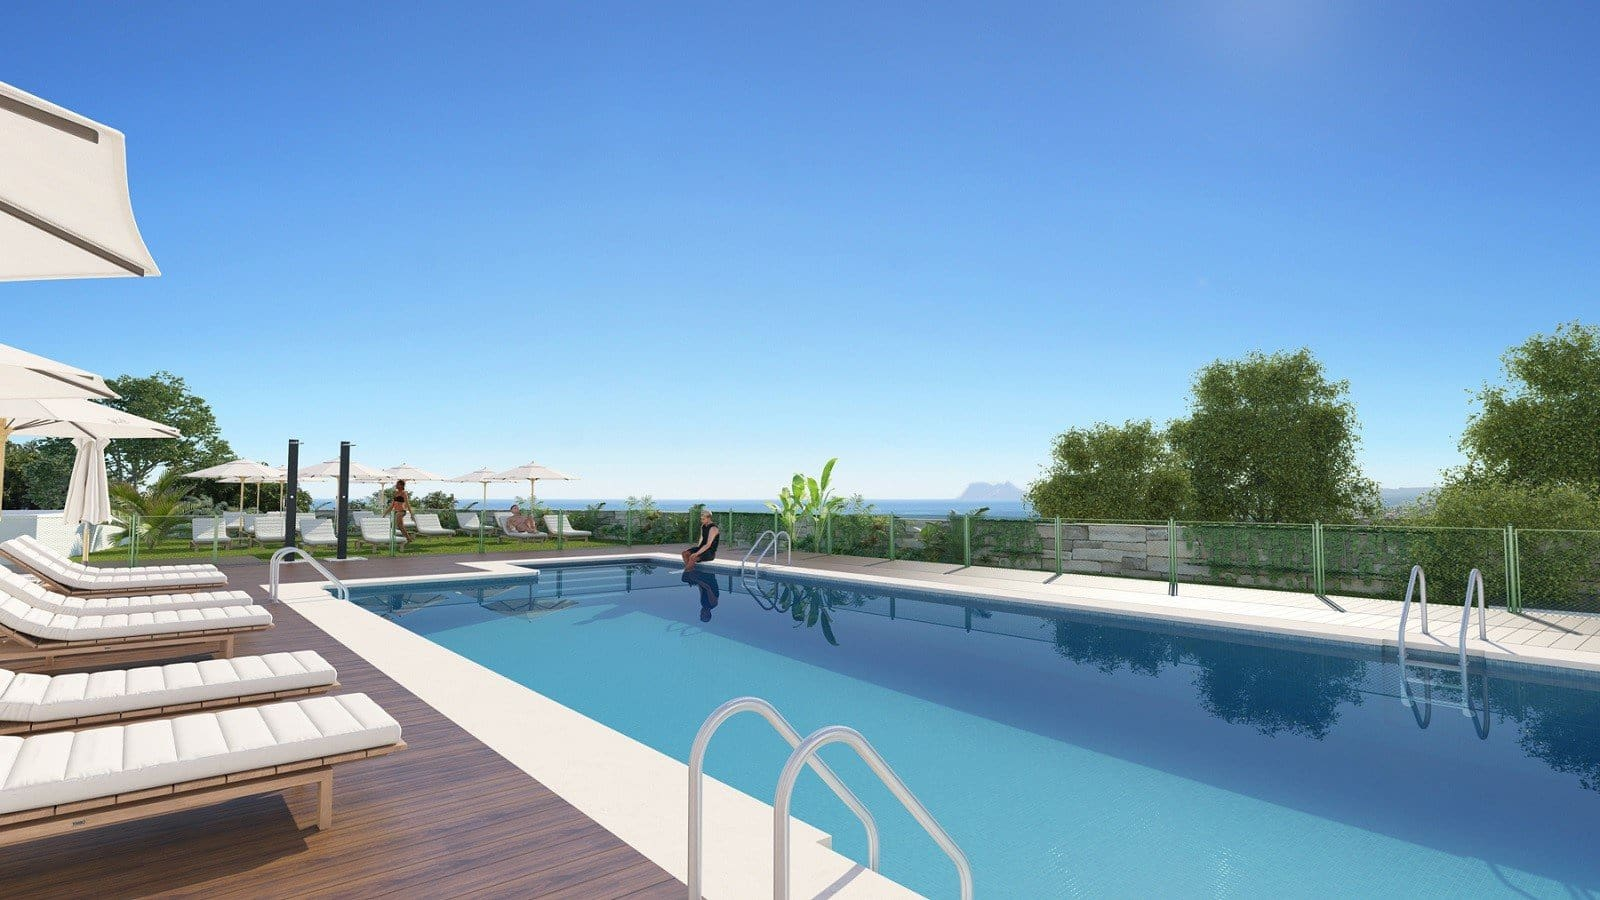 3 bedroom Townhouse for sale in Manilva with pool garage - € 285,000 (Ref: 5140008)